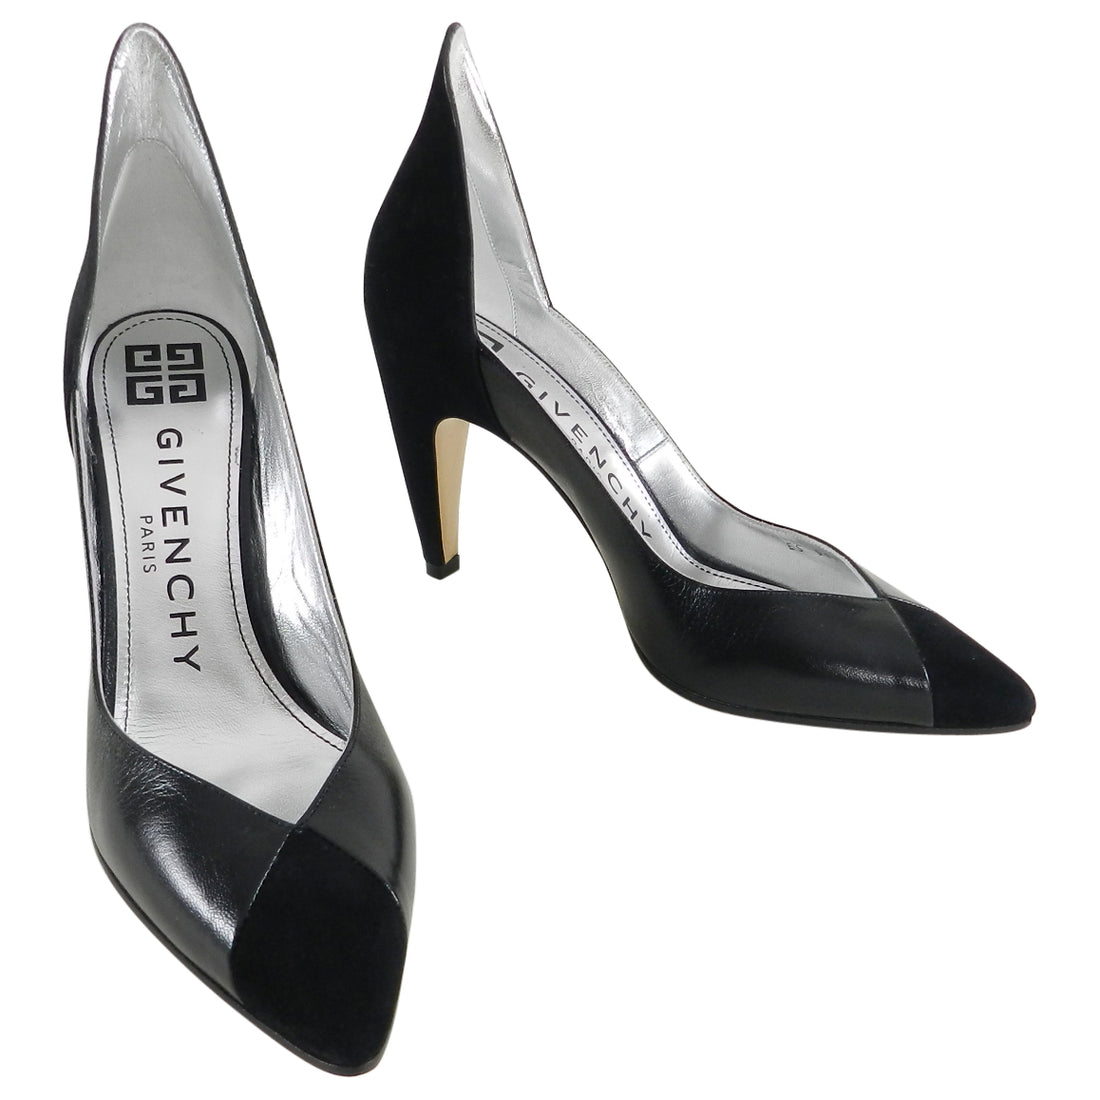 Givenchy Black Suede and Leather High Rise Back Pumps - 39